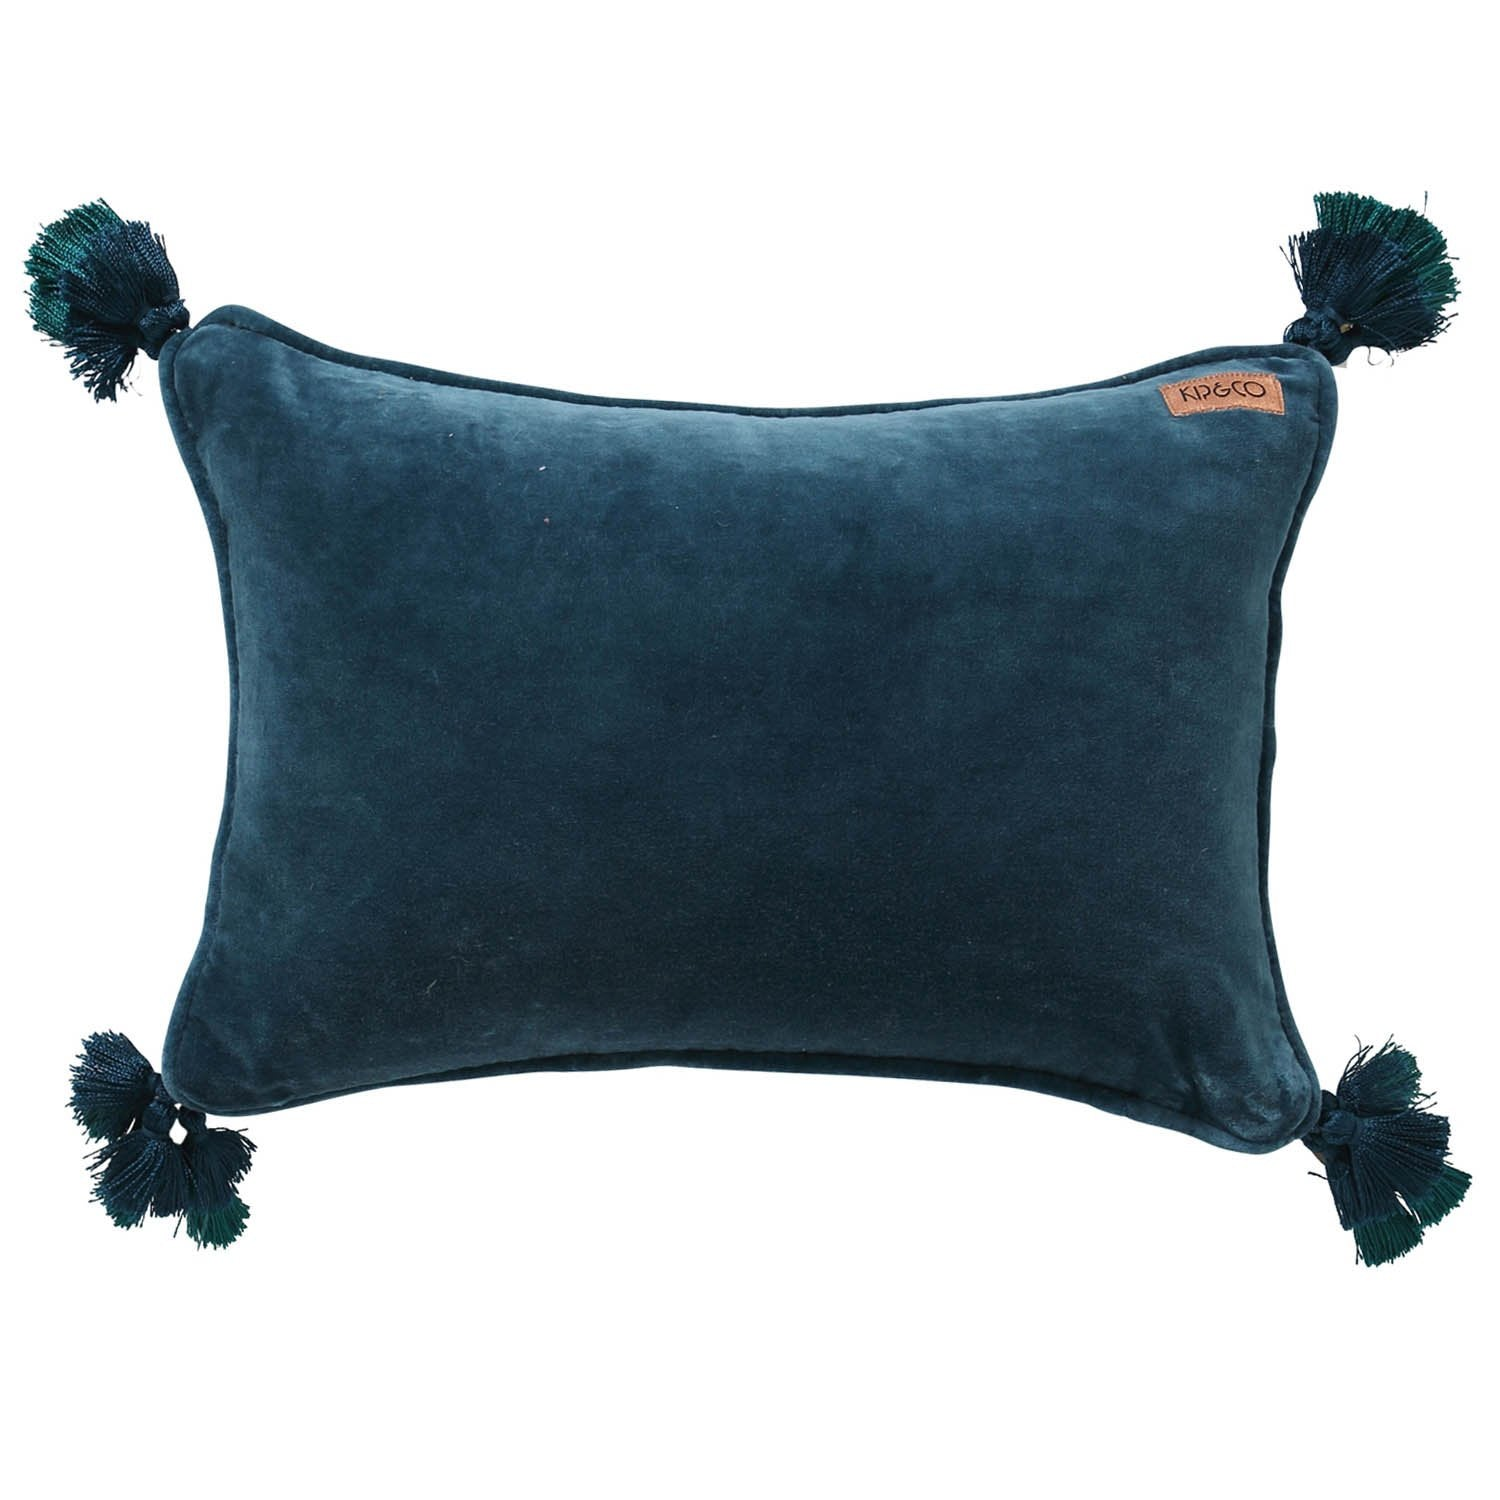 Kip & Co Teal Velvet Souk Cushion - The Artisan Storeroom